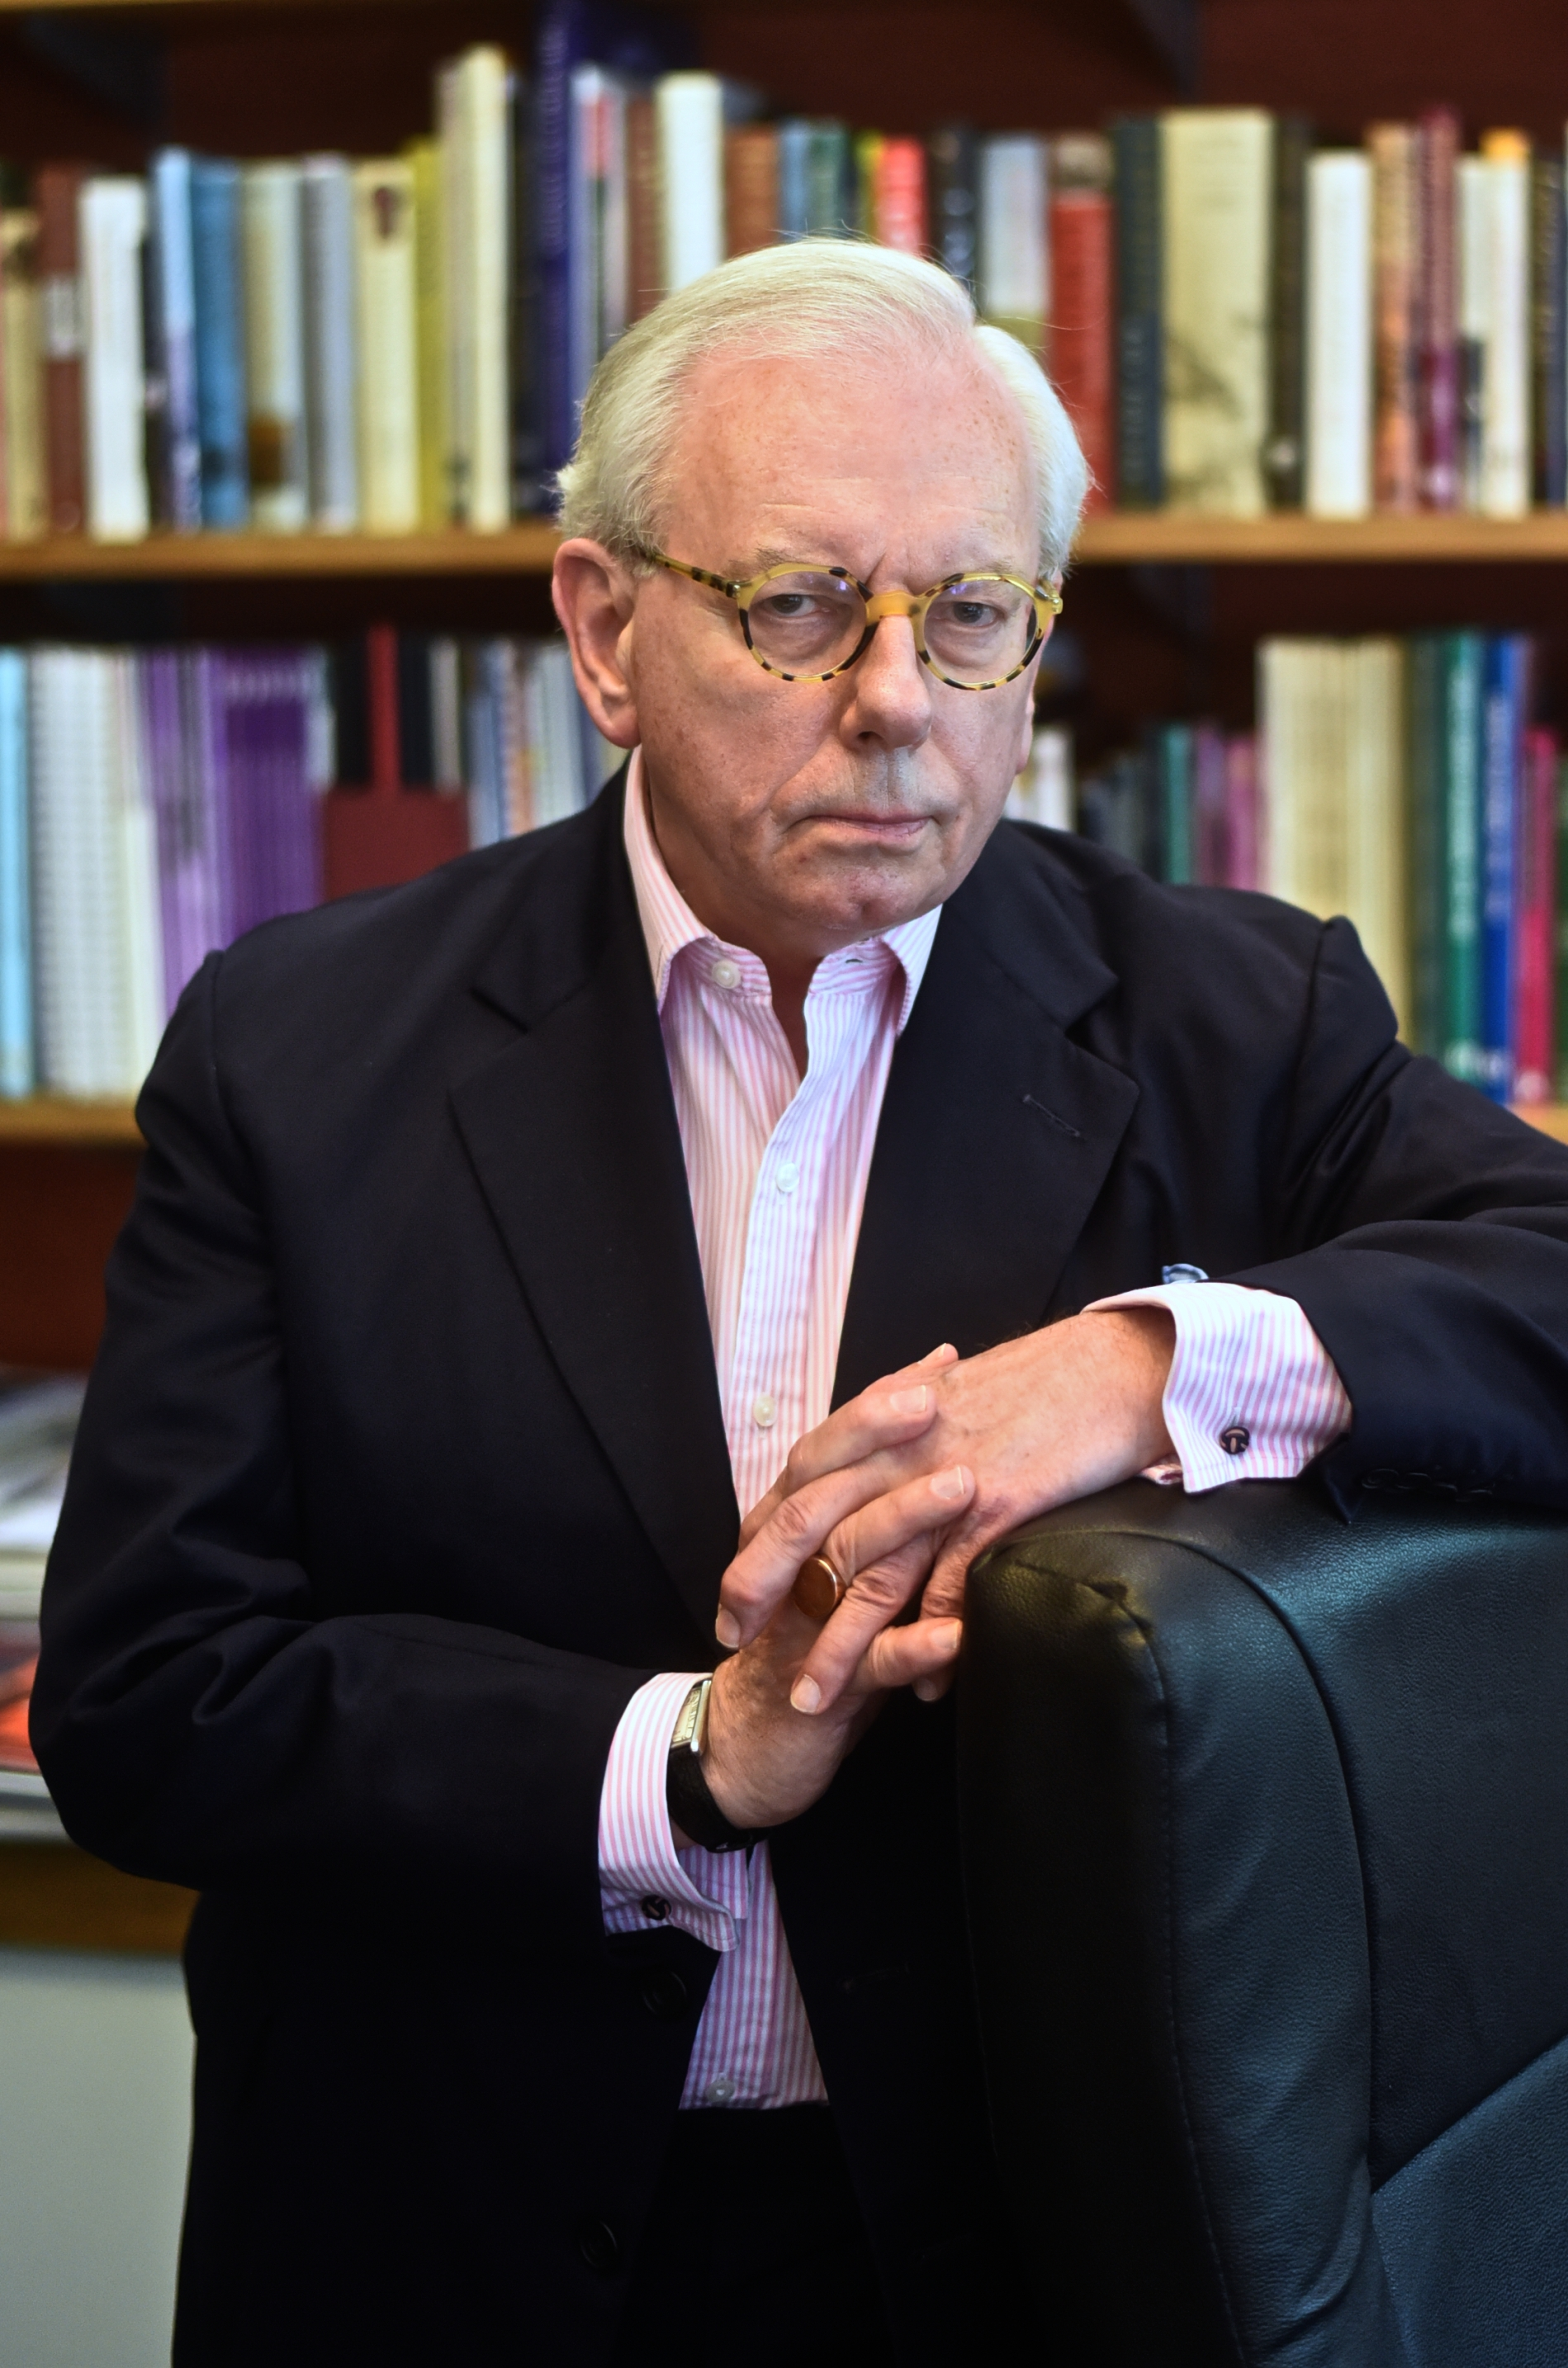 David Starkey – A Monarchy of Misfits?